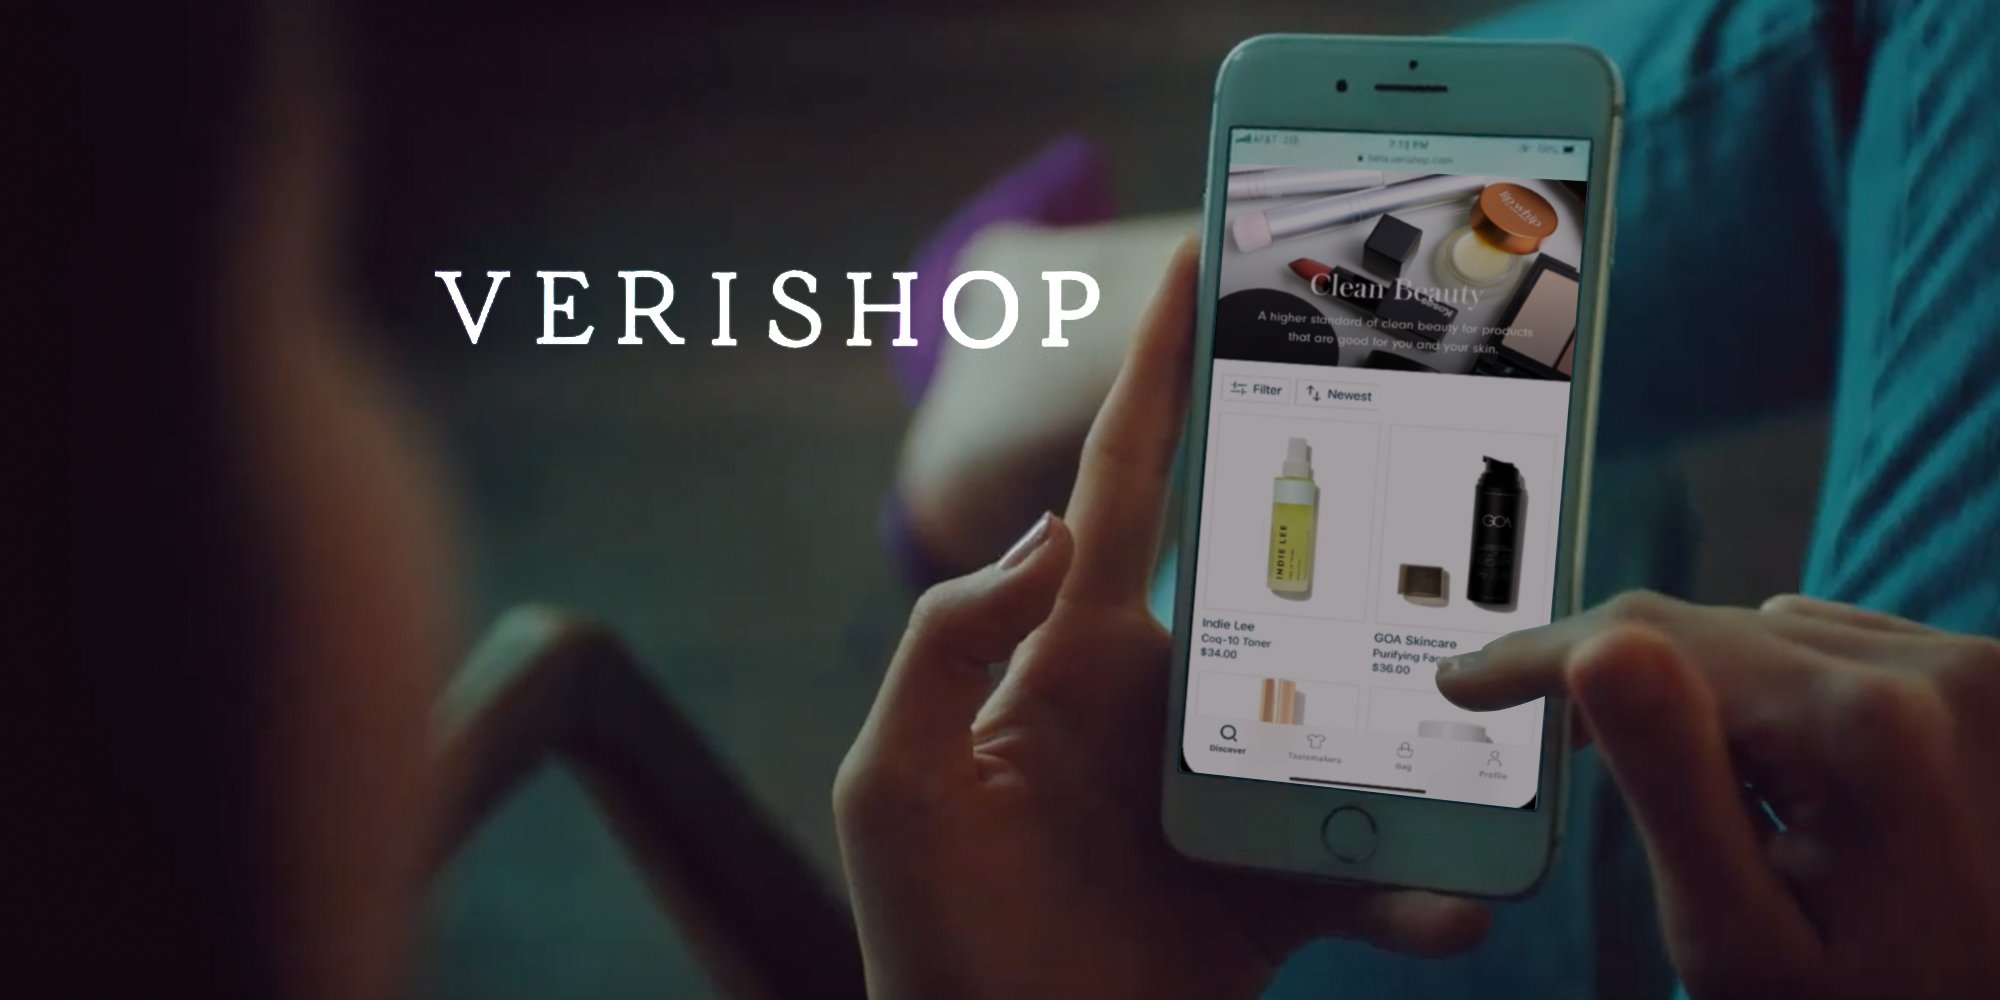 New E-tailer Verishop's Beauty Selection Is Starting With Upscale Clean Brands Before Broadening Its Reach